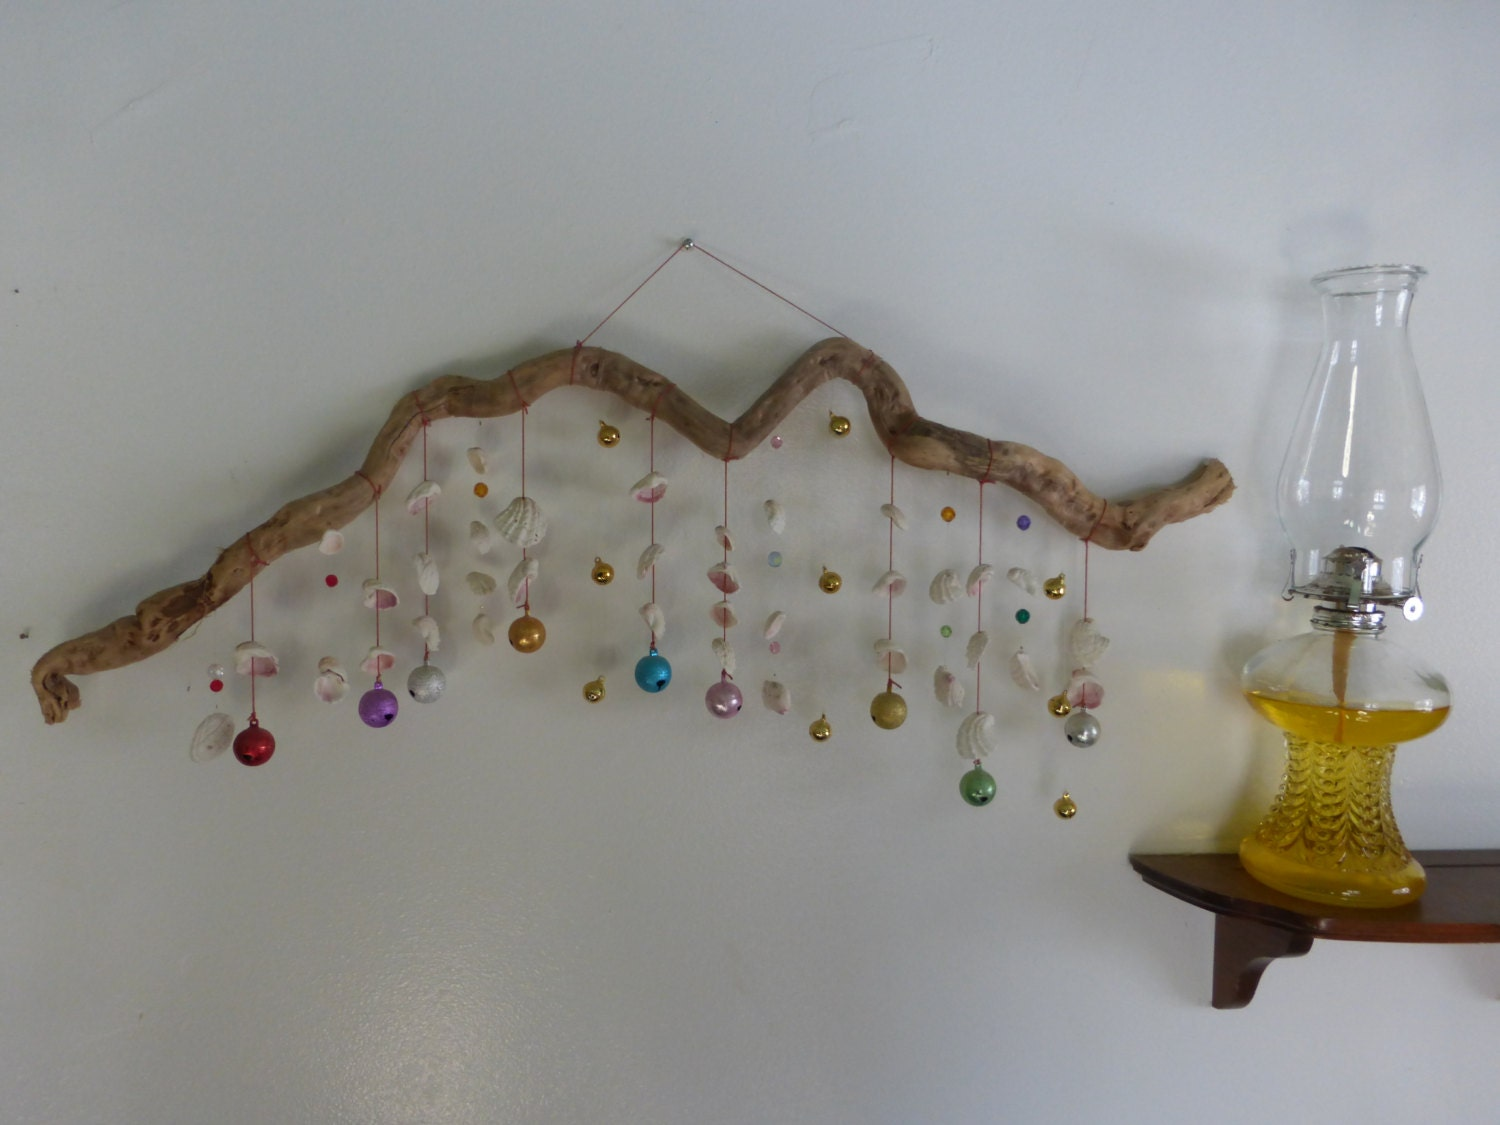 Mobile Hanging Mobile Driftwood Ceiling Art Zen By